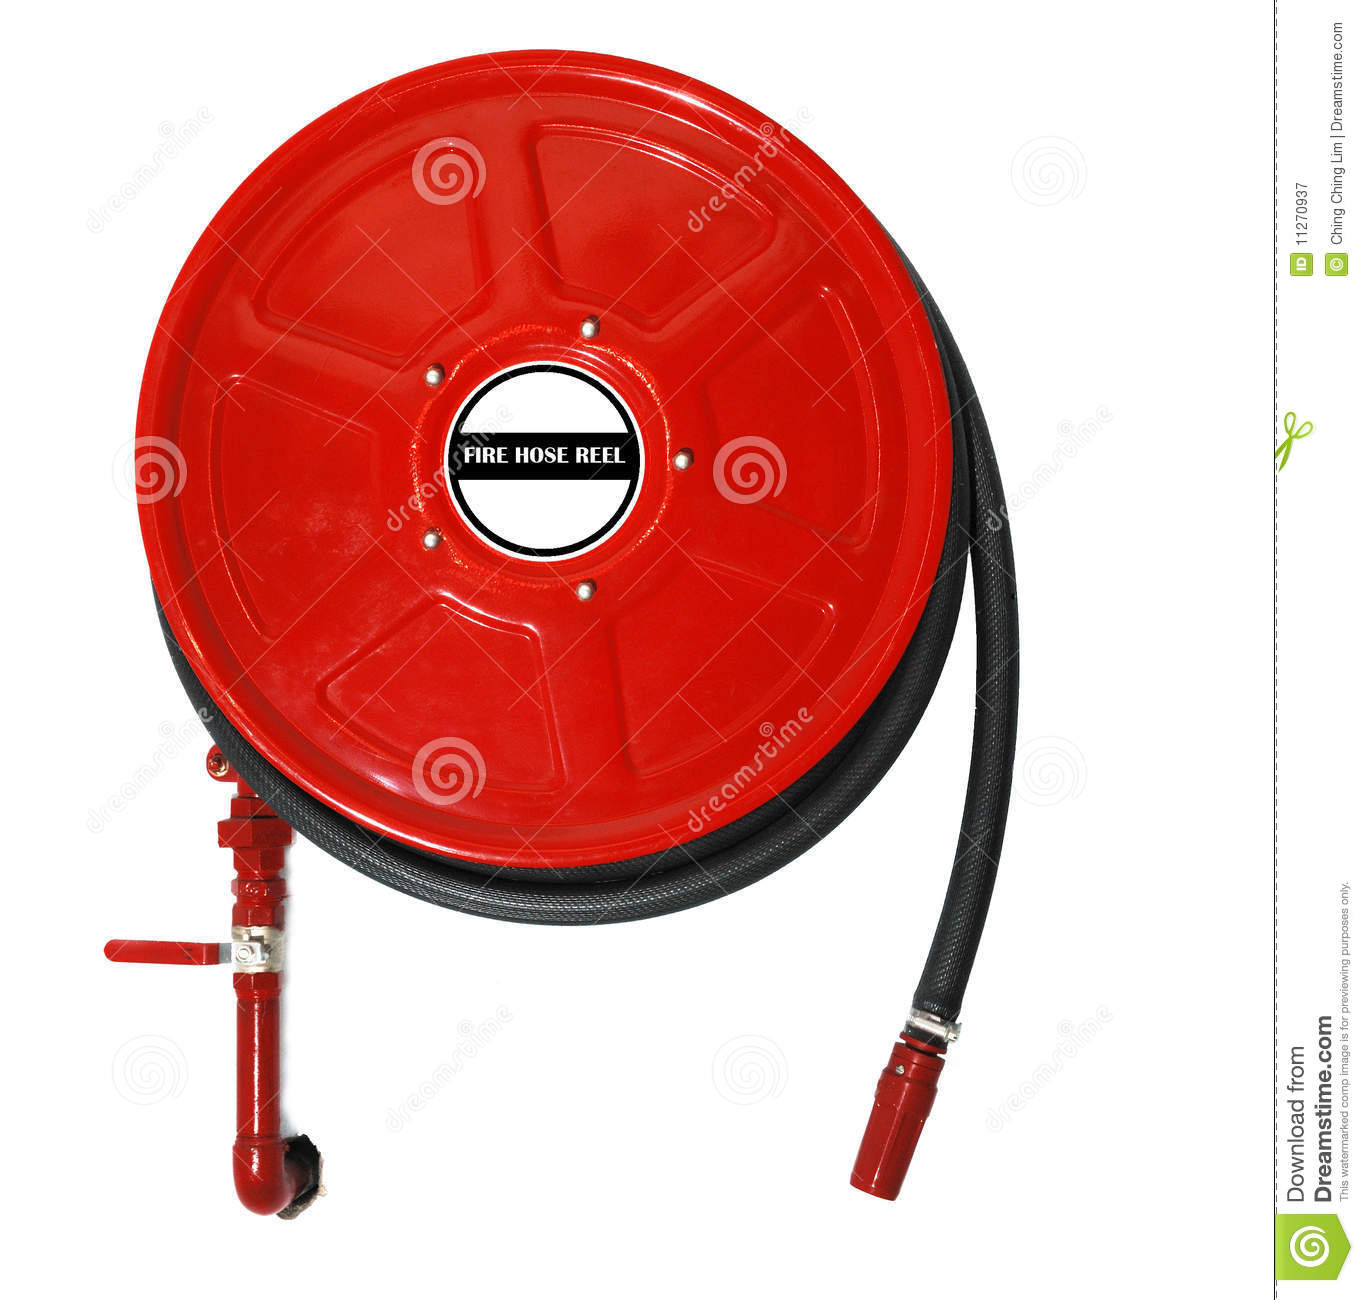 fire house reel stock image image of gear wall saver